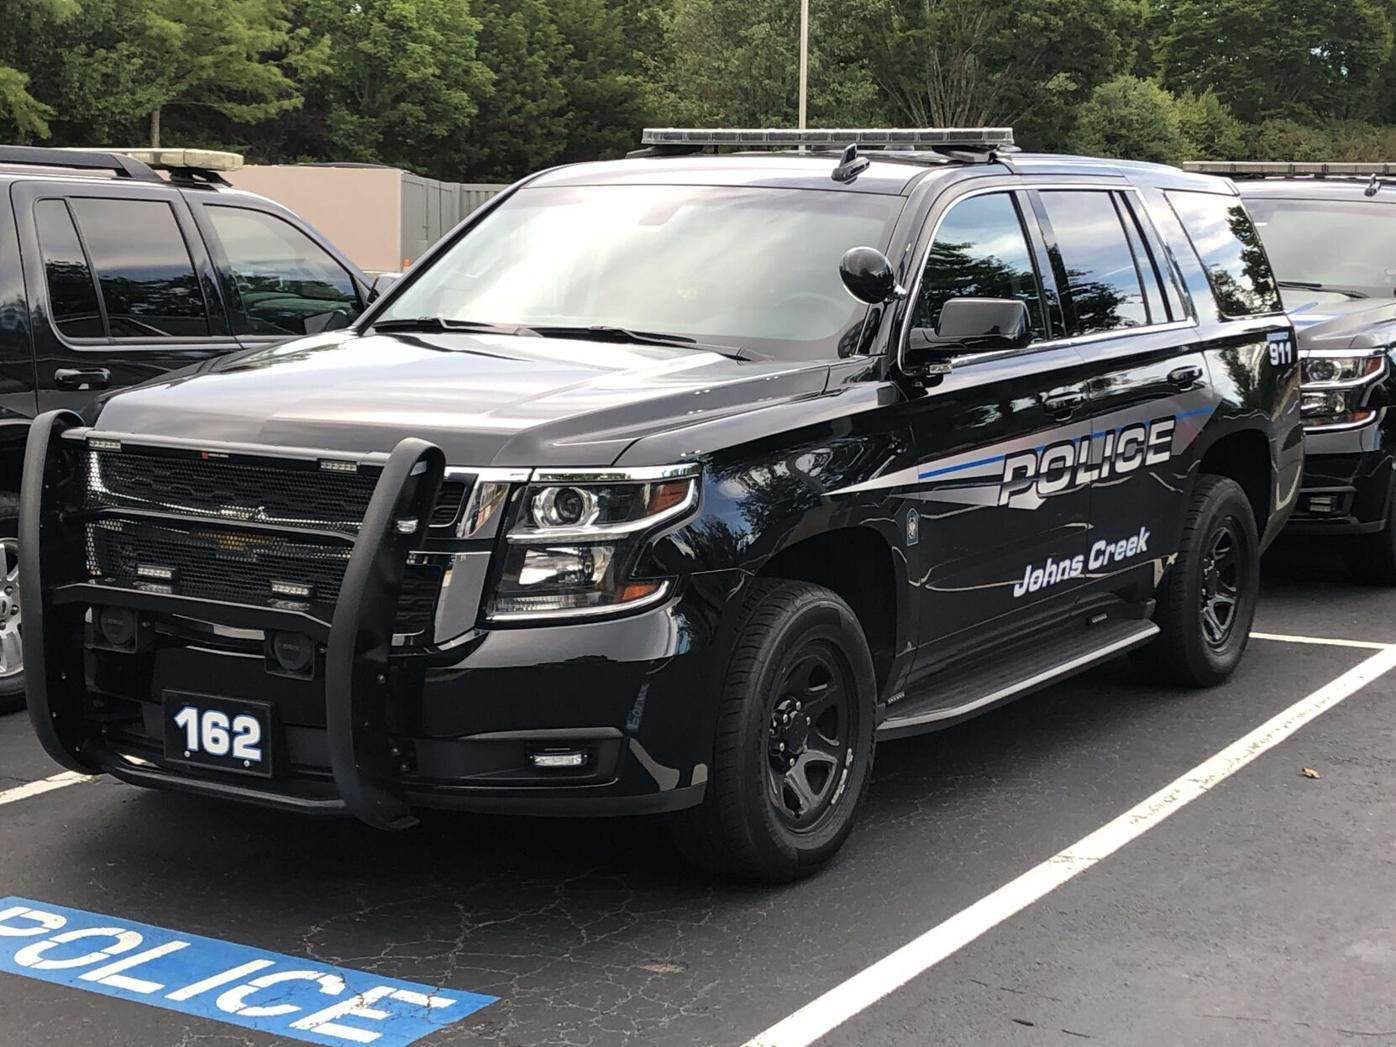 Johns Creek severs ties with embattled police chief